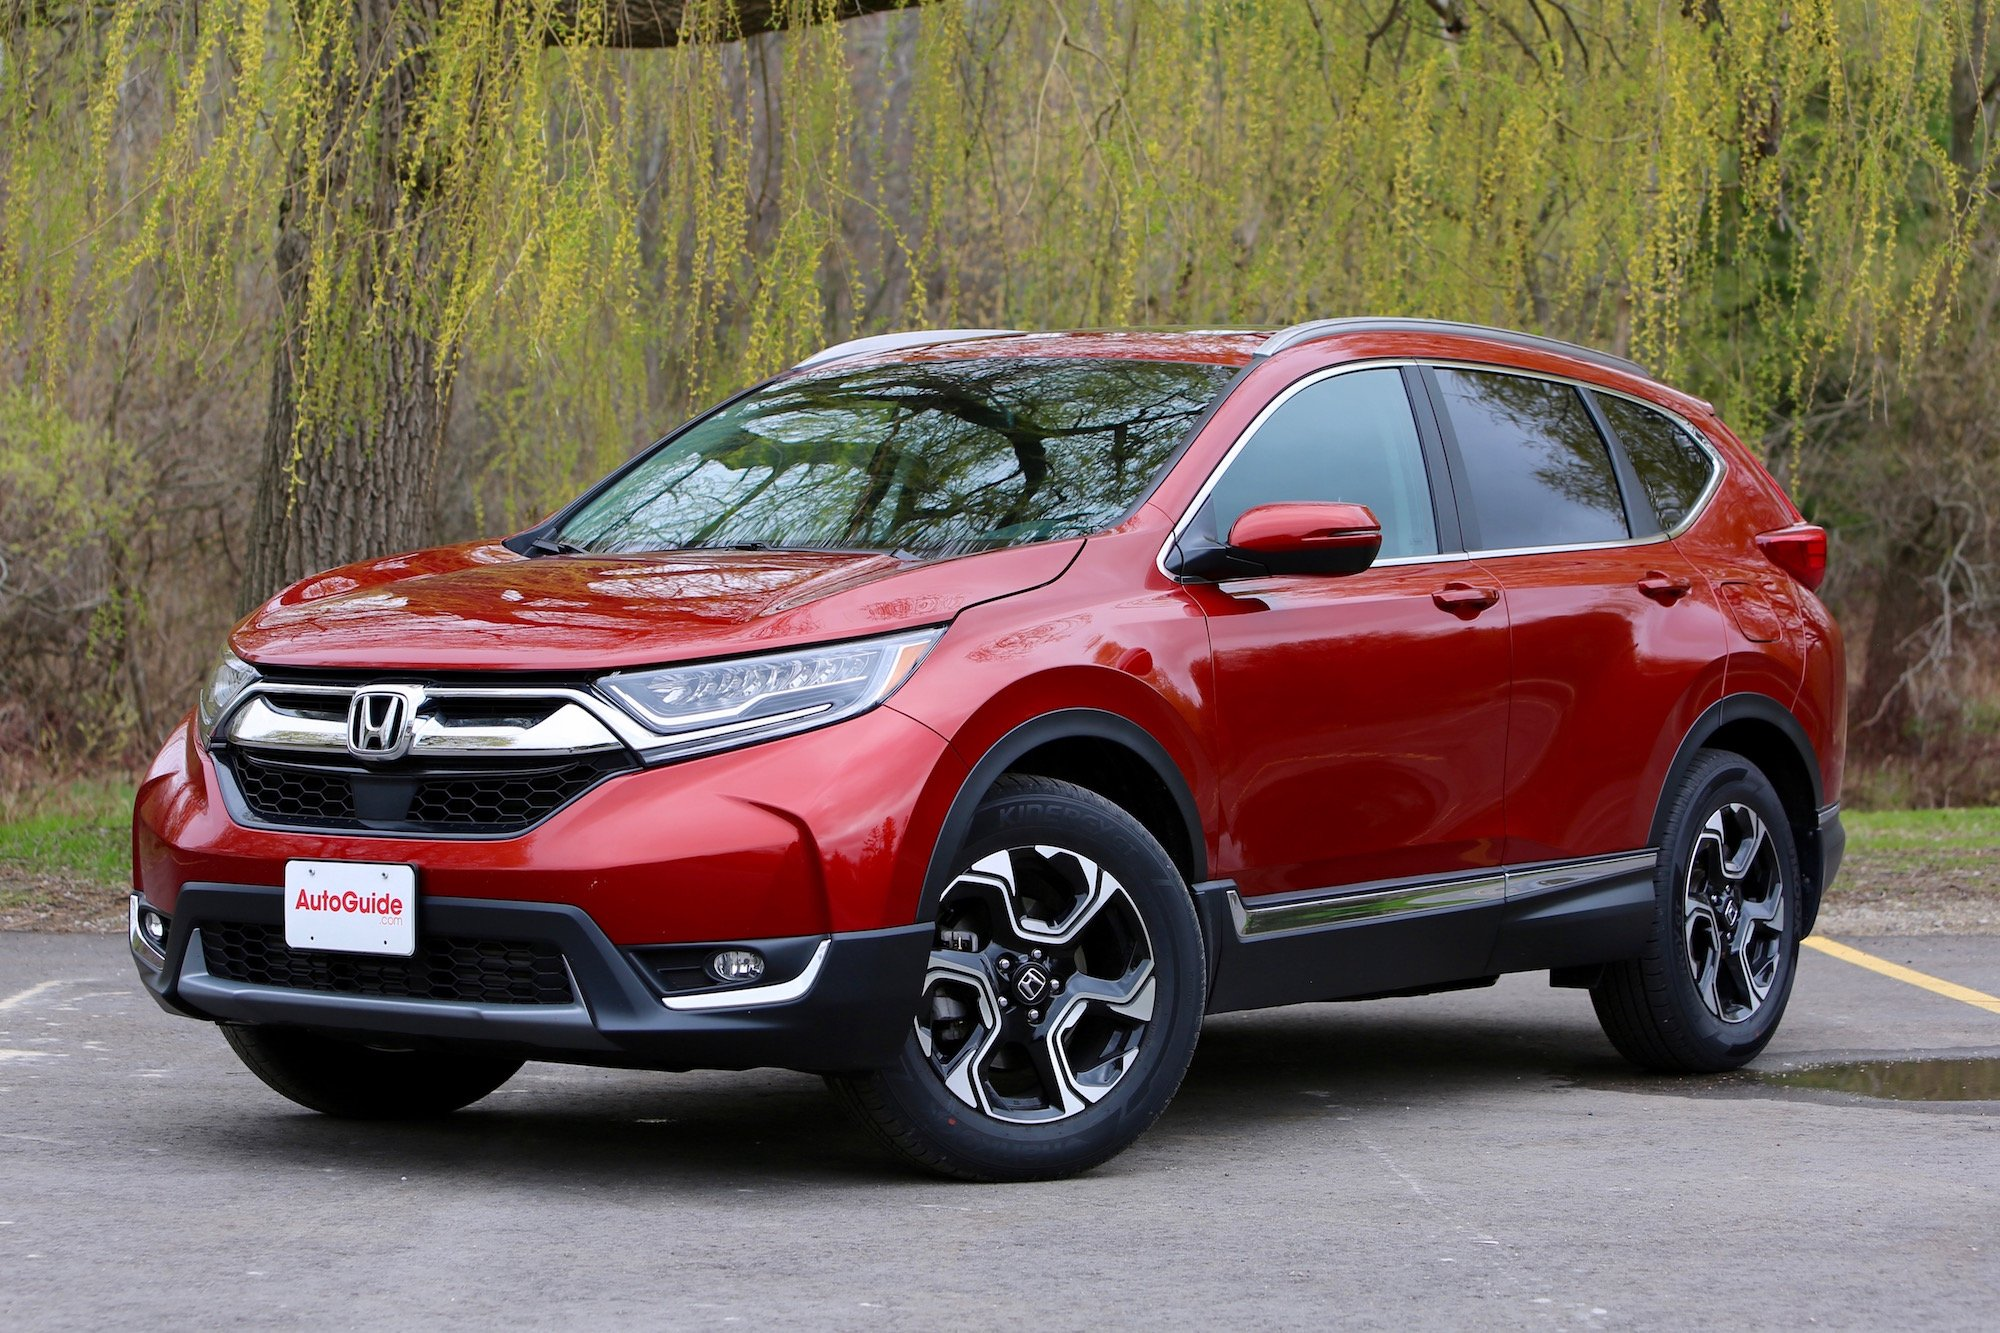 2013 honda cr v vs 2014 subaru forester vs 2012 toyota for Honda crv vs subaru forester